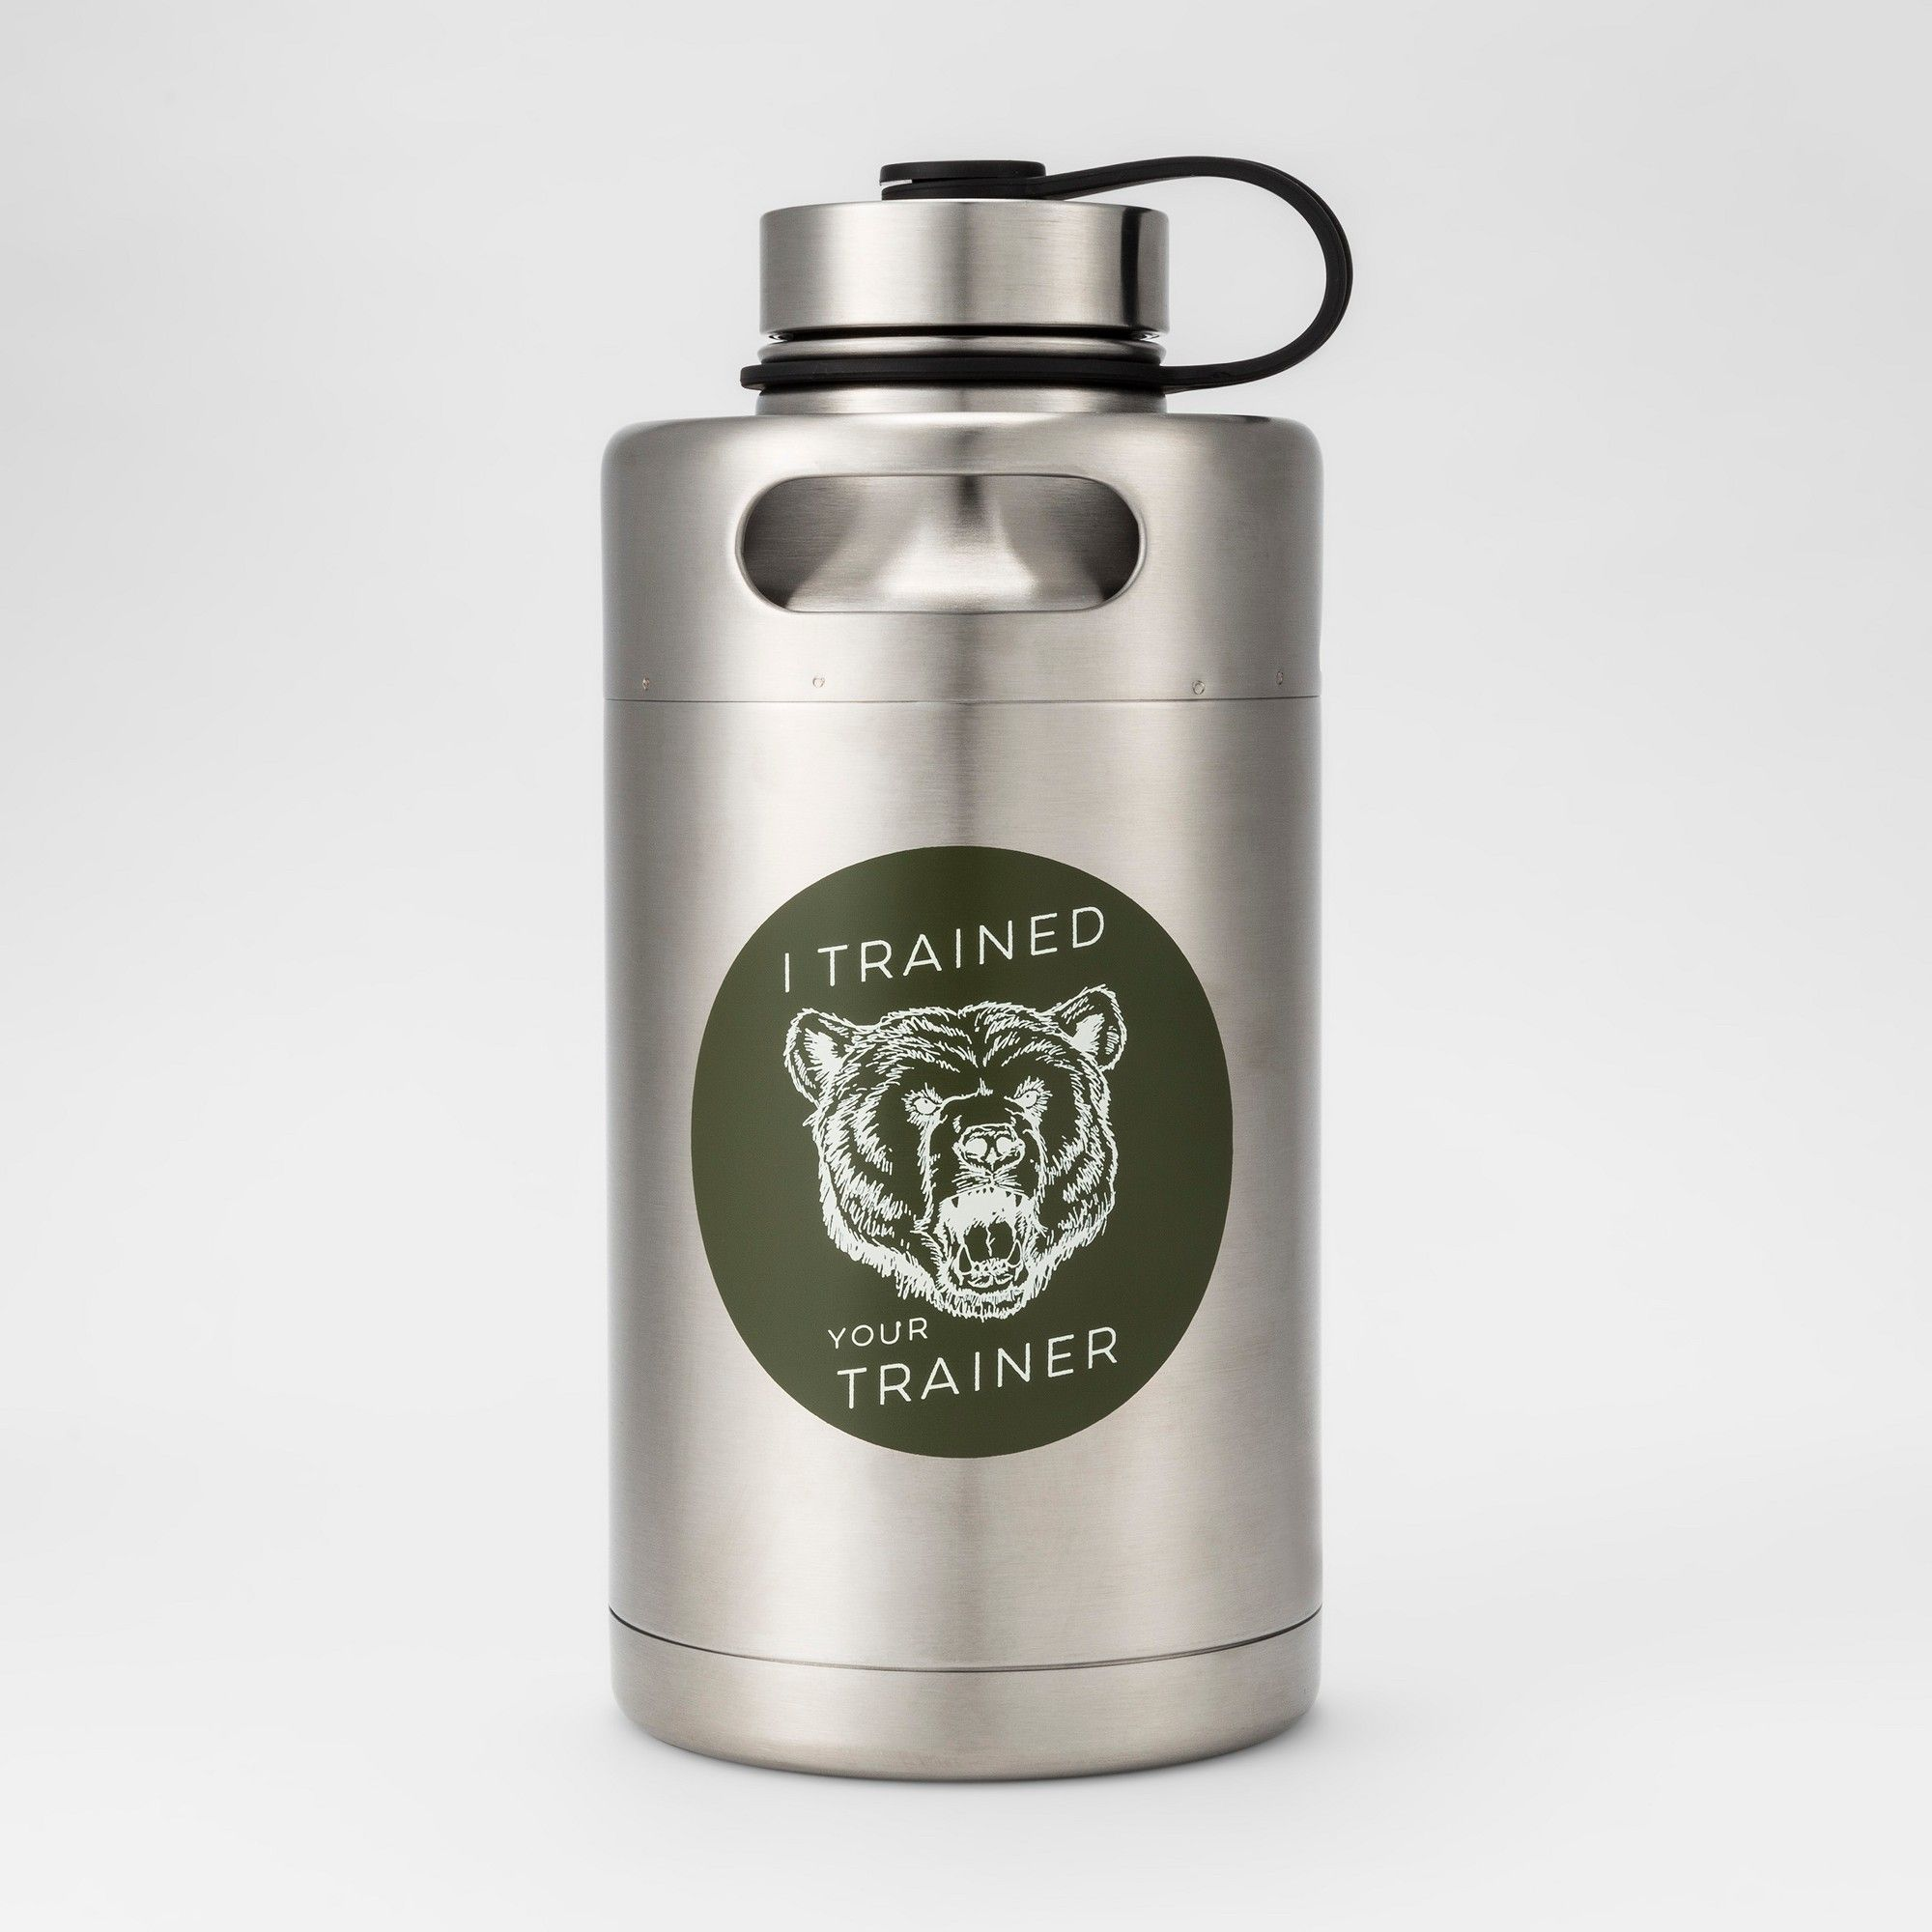 ebe7e968a6c Stainless Steel Vacuum Insulated Keg Growler Water Bottle 64oz Trained Your  Trainer - Room Essentials